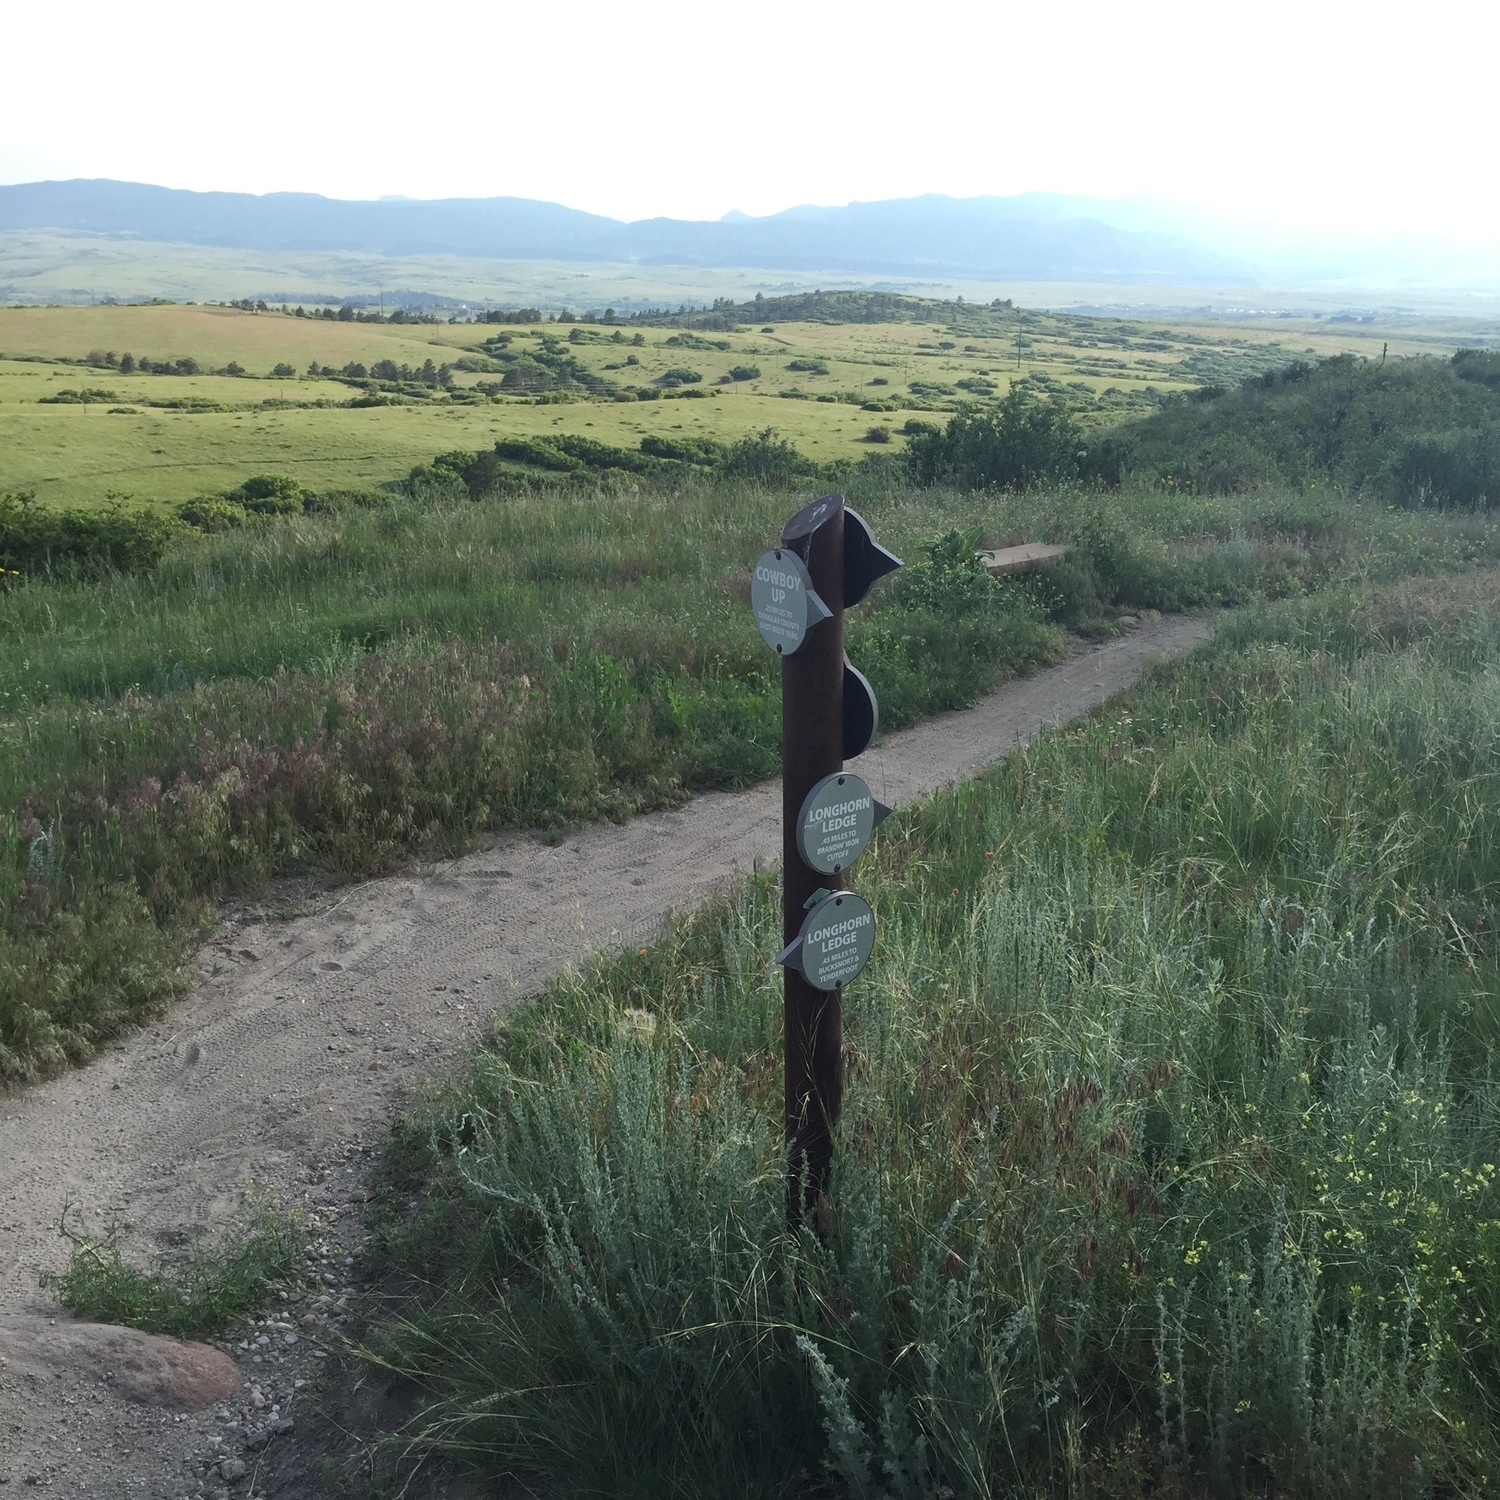 Highlands Ranch Colorado Street Map 0836410: Well Marked Trail Intersections With Mileage